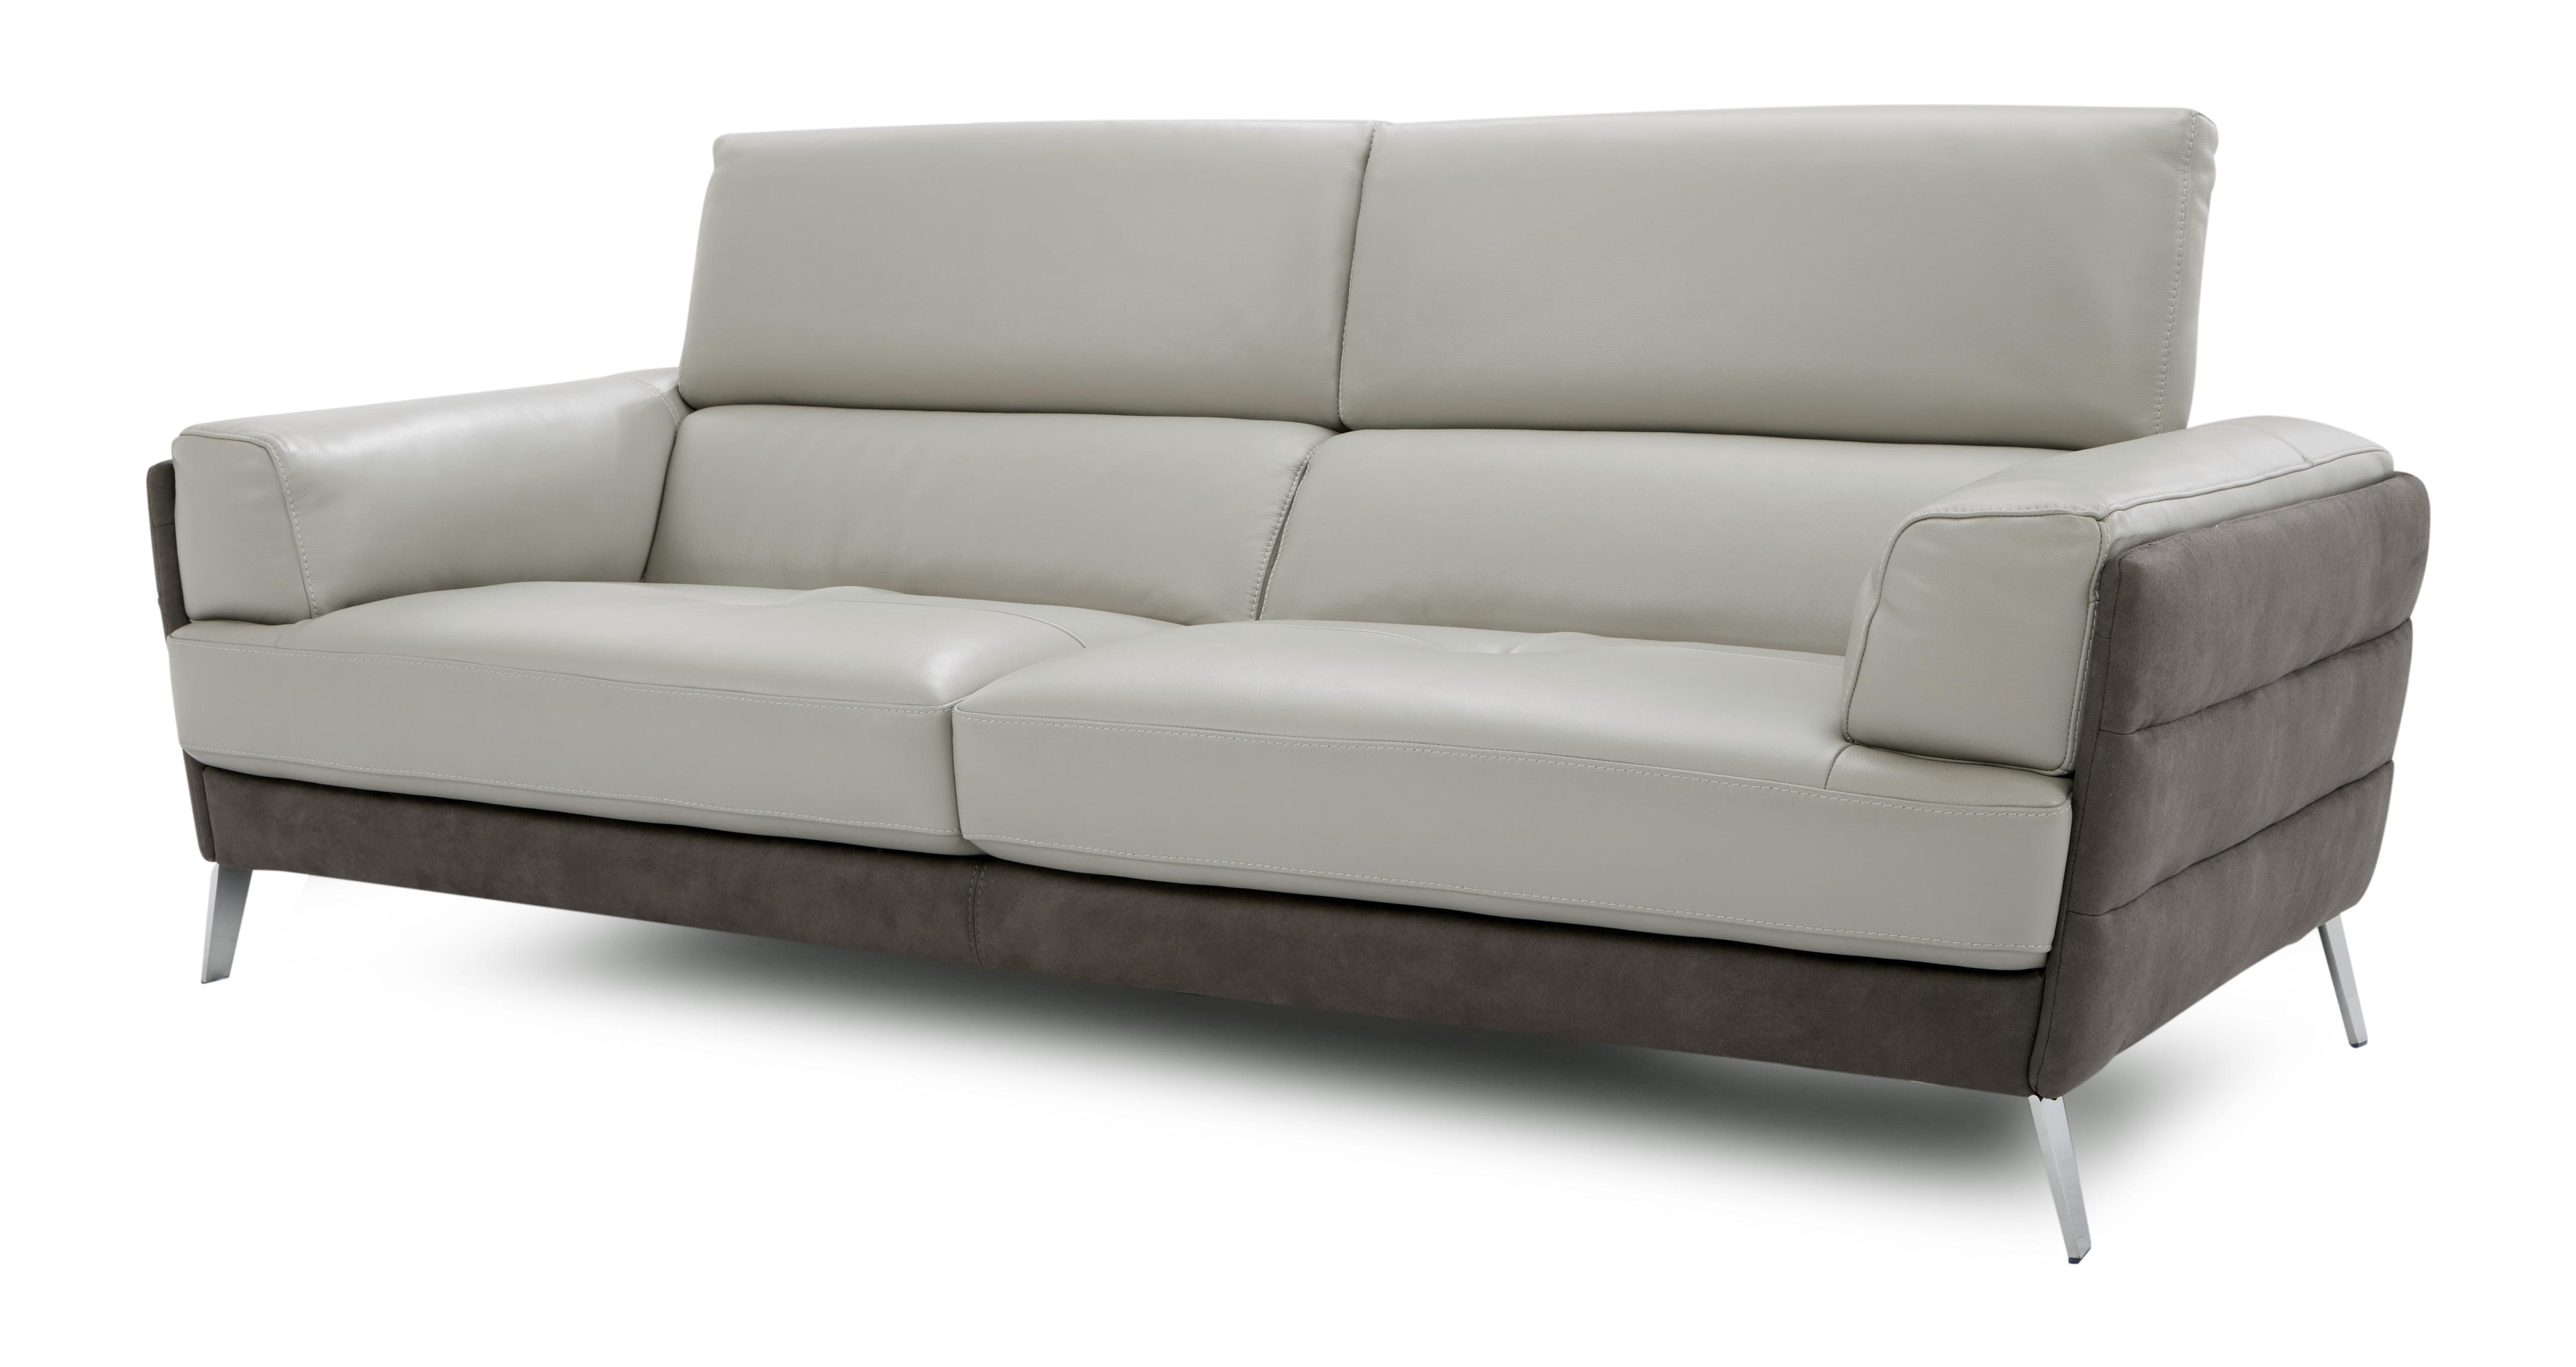 2 seater leather sofas at dfs white metal outdoor sofa elvarado and fabric x 3